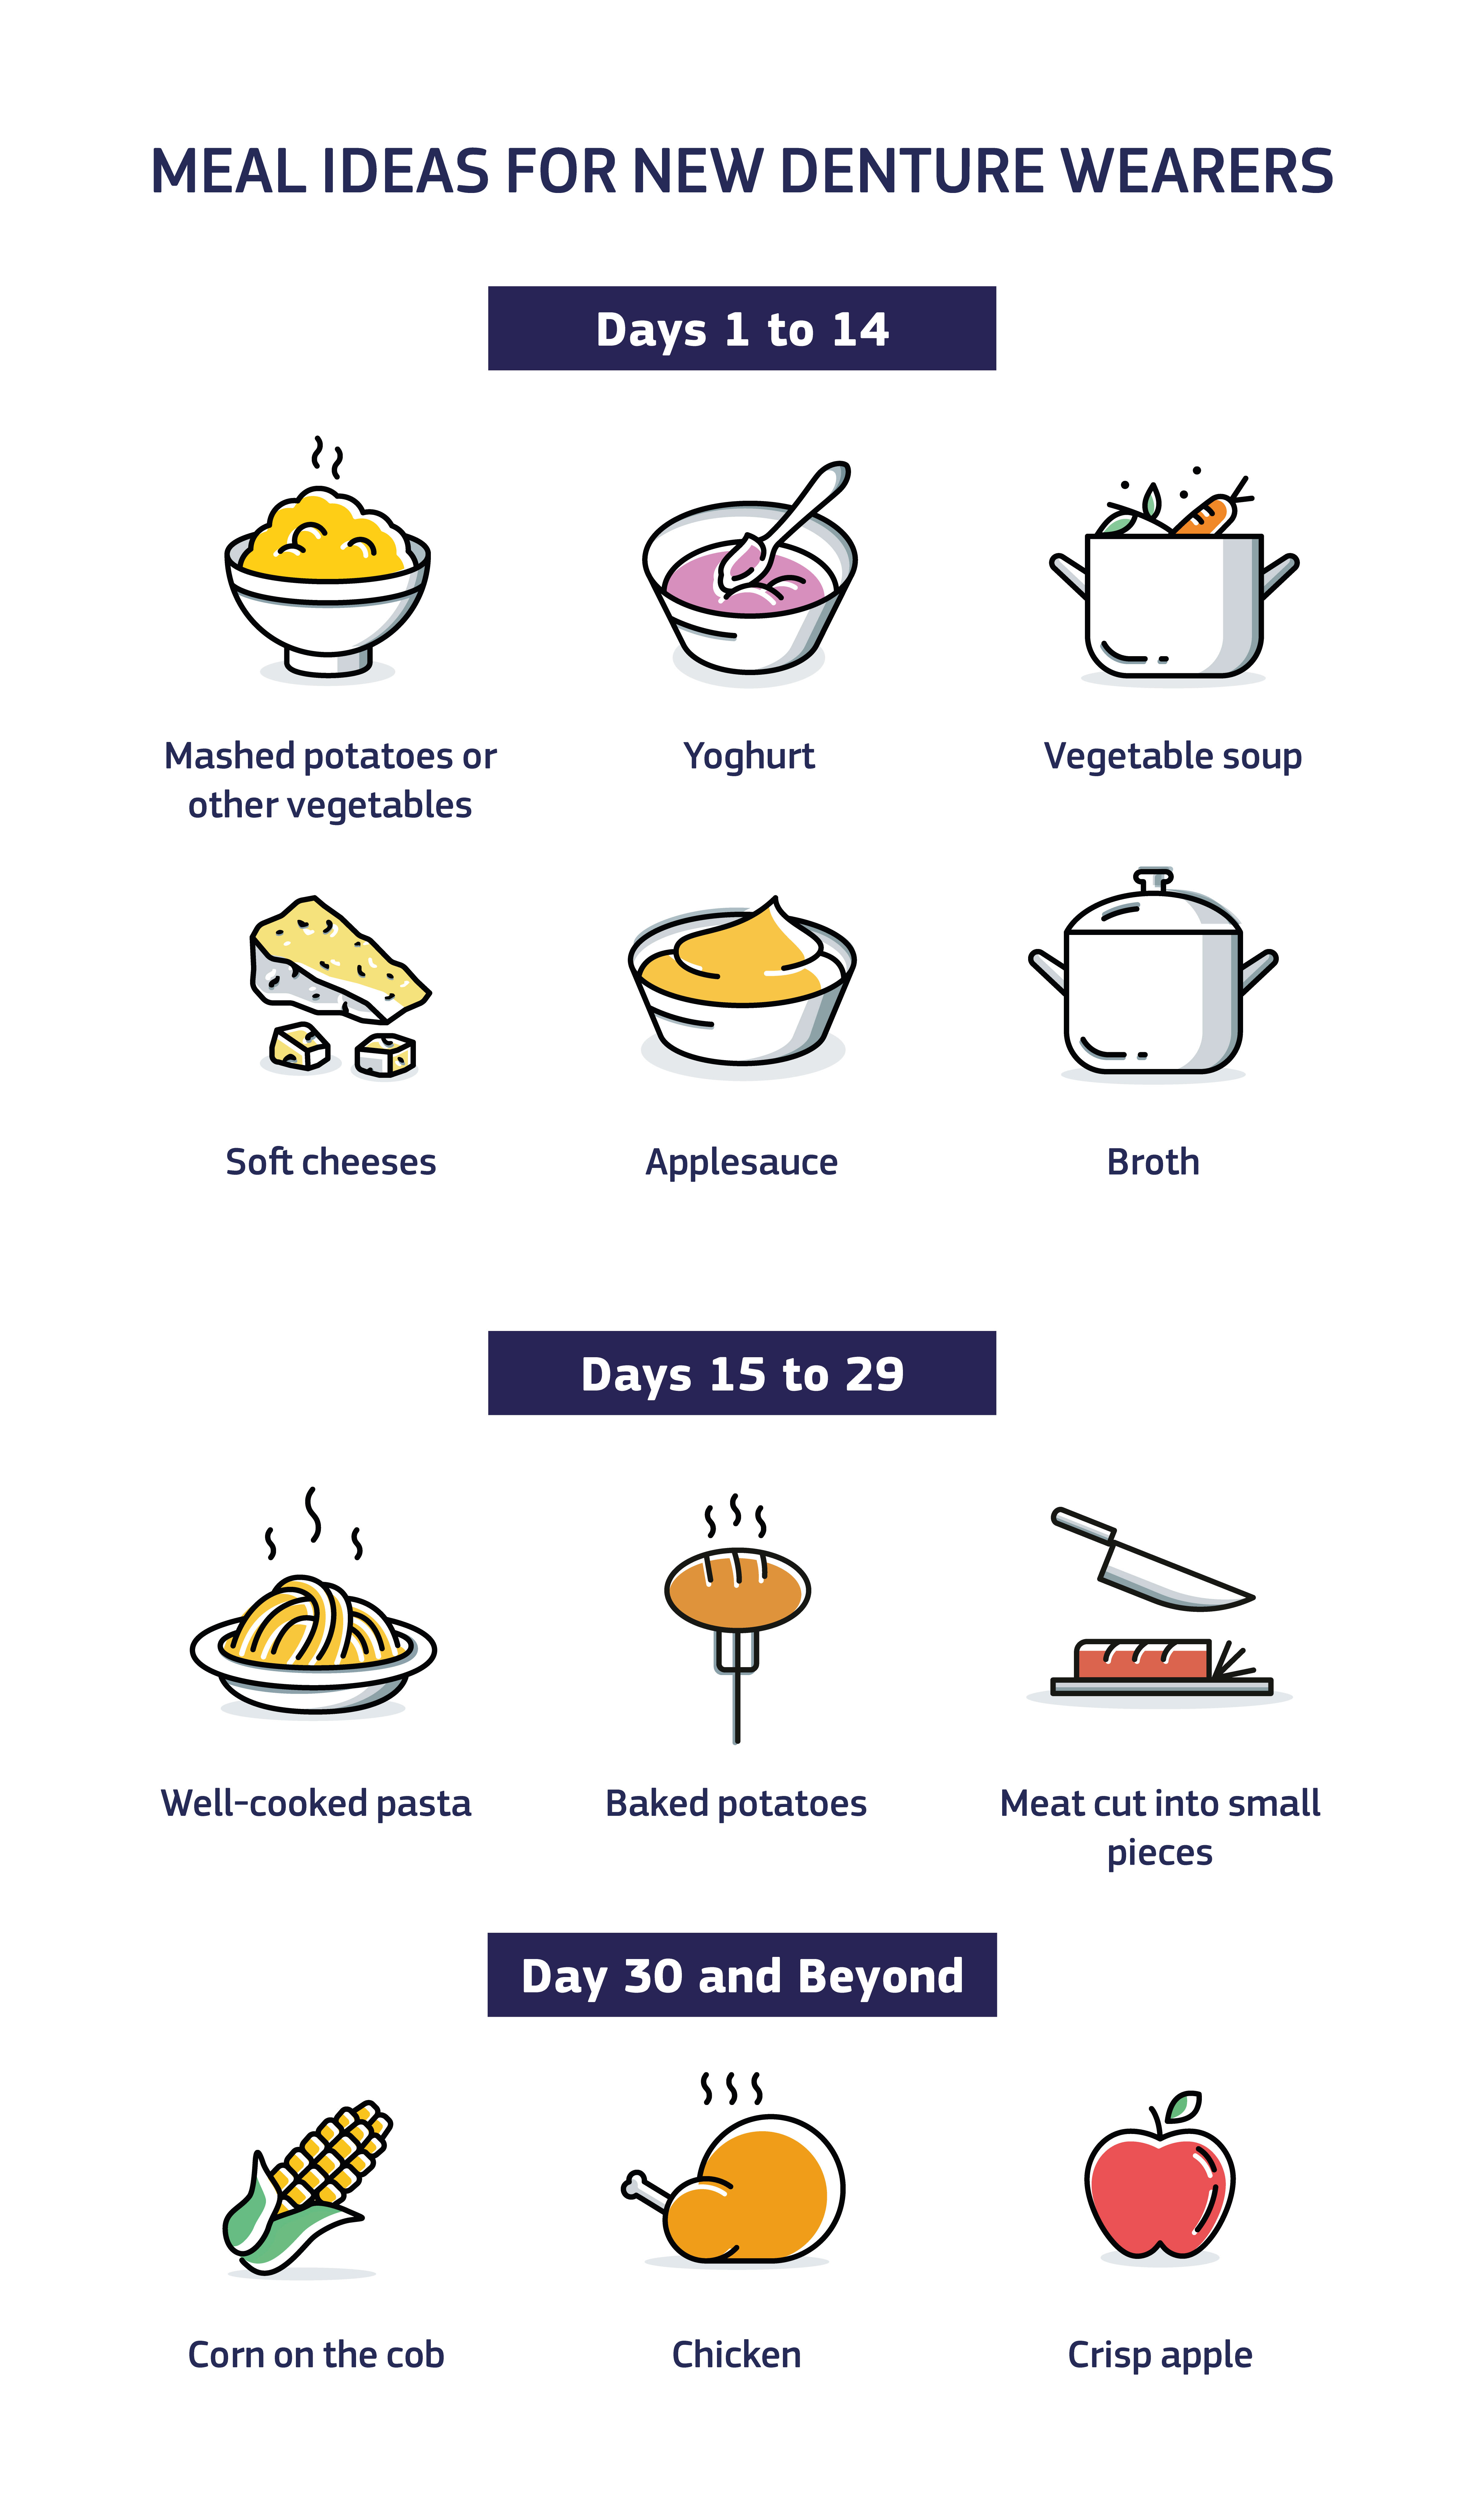 Infographic showing meal ideas for new denture wearers. Days 1 to 13: Mashed potatoes or other vegetables. Yoghurt. Vegetable soup. Soft cheeses. Applesauce. Broth. Days 15 to 29: Well-cooked pasta. Baked potatoes. Meat cut into small pieces. Day 30 and beyond: Corn on the cob. Chicken. Crisp apple.